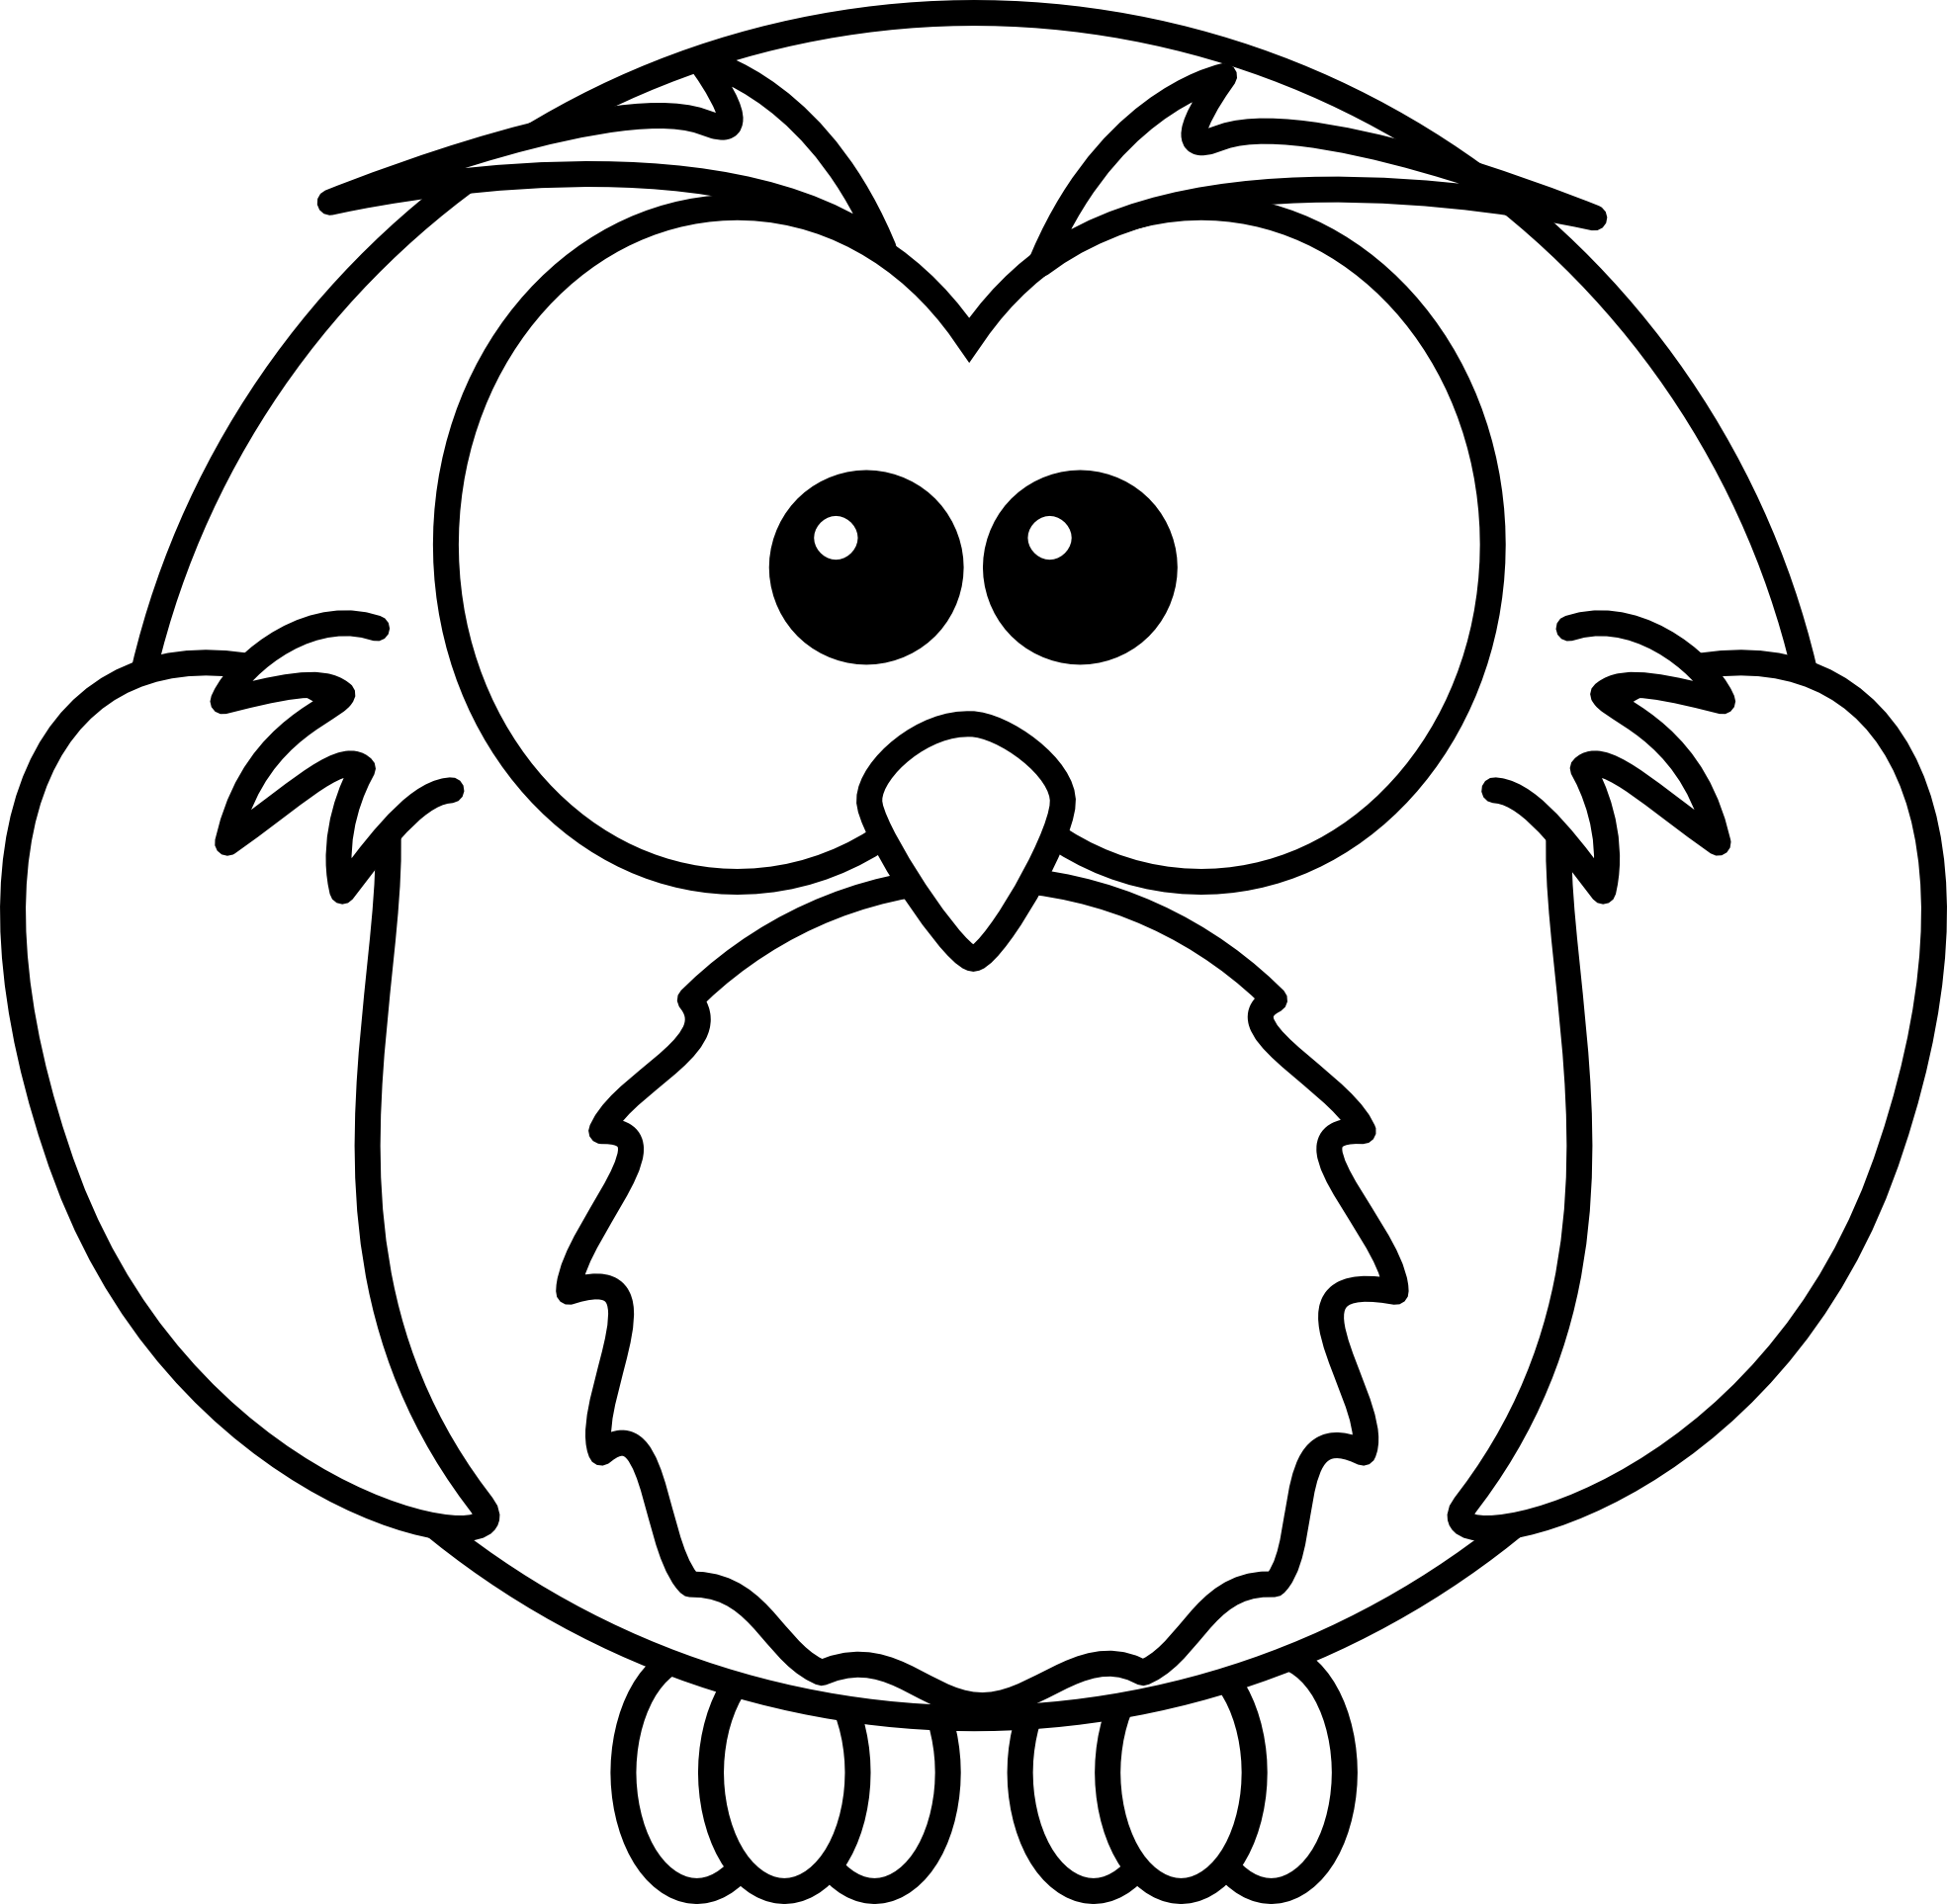 1969x1926 Baby Owl Clipart Black And White Danaami2 Top